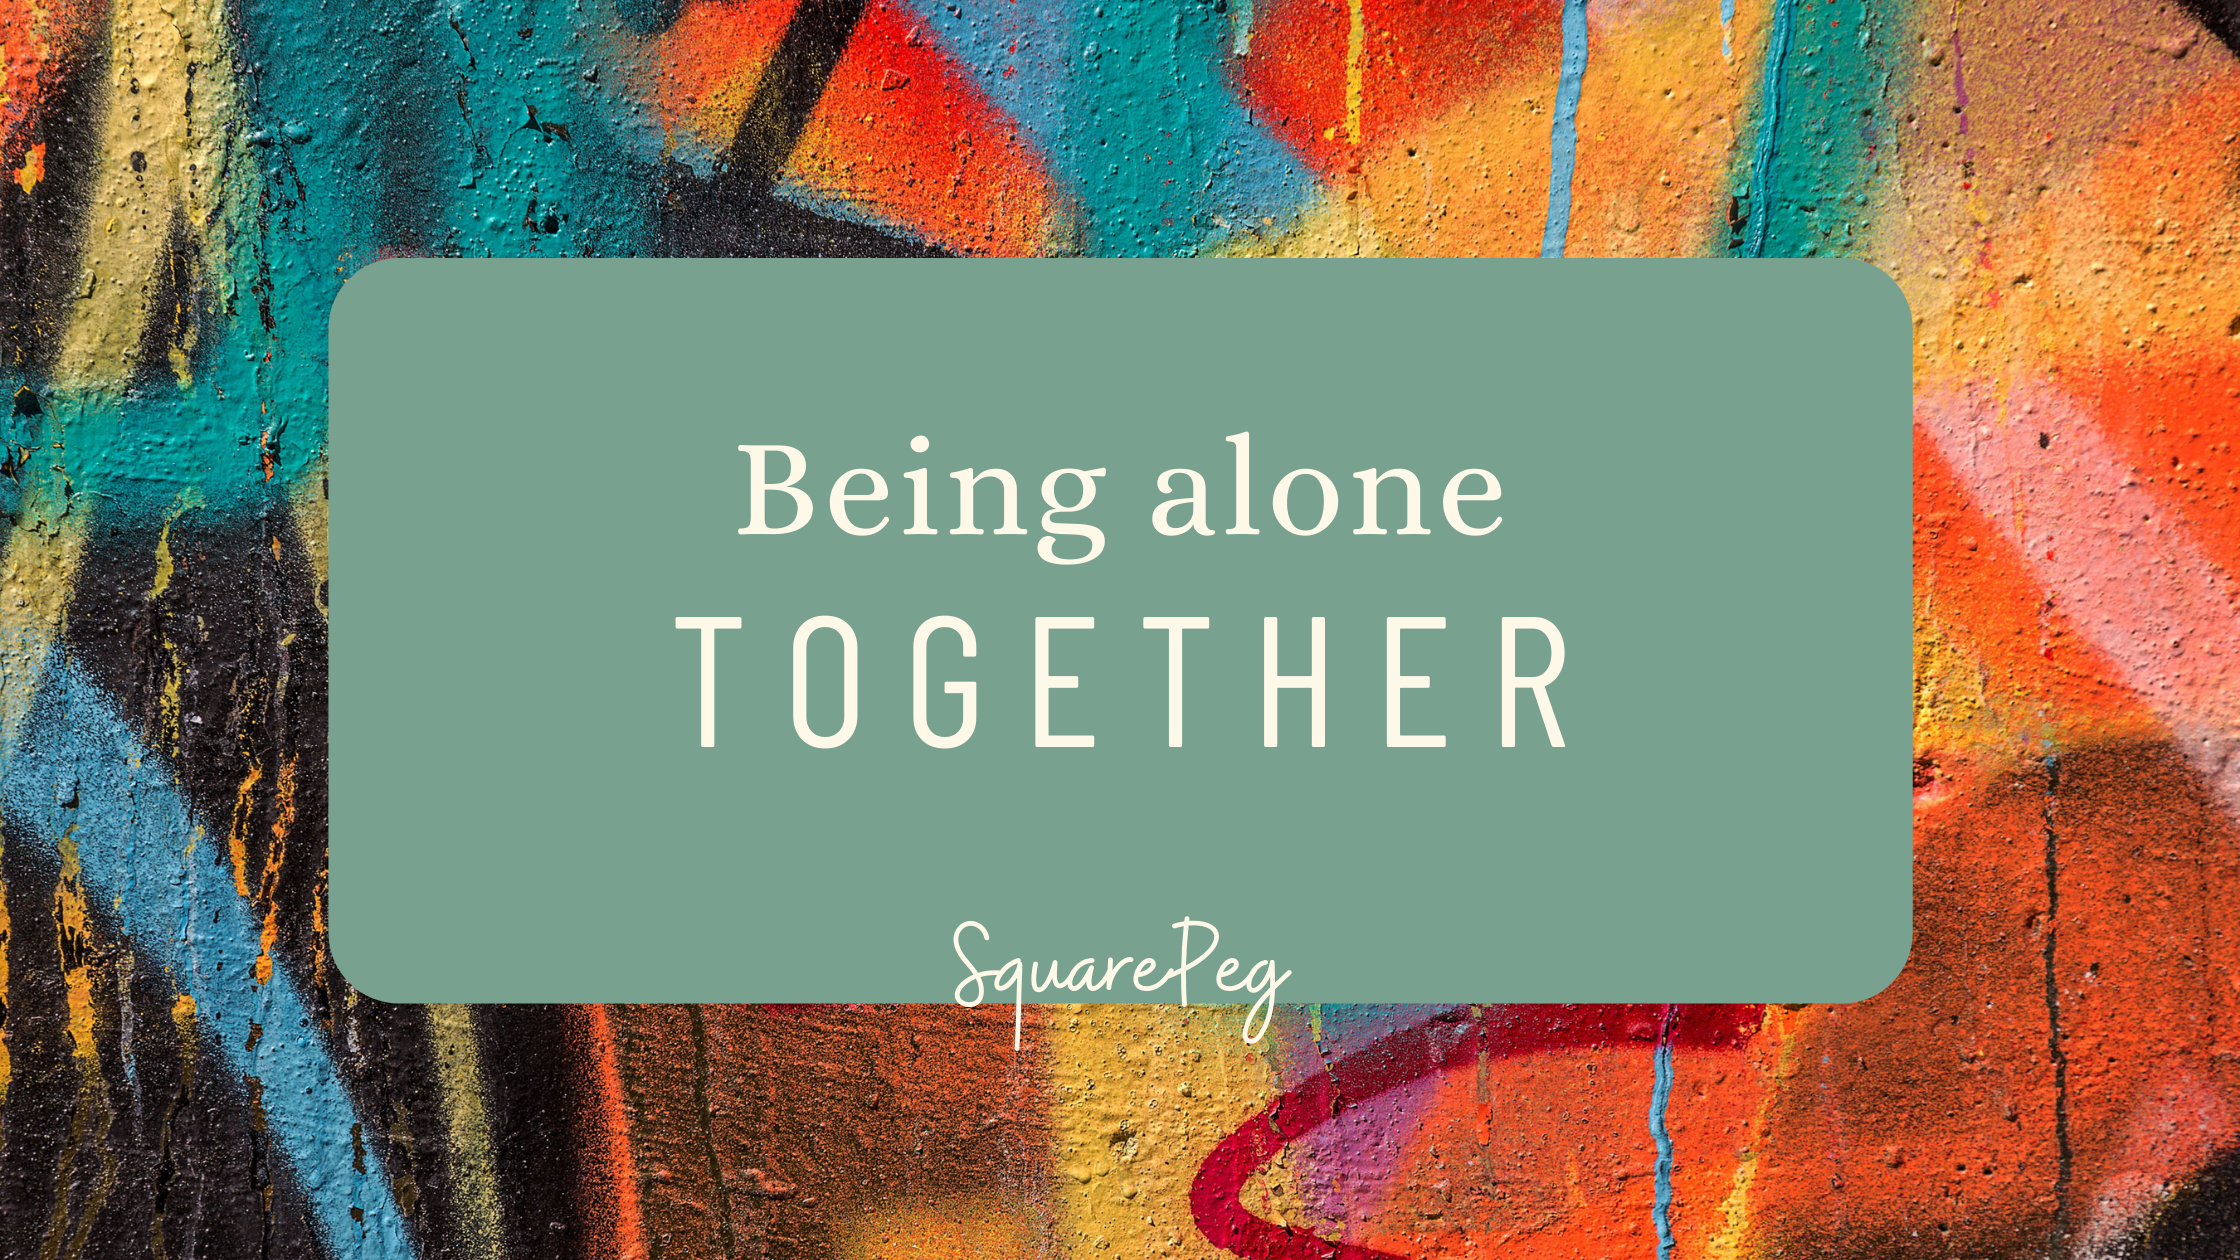 Being alone together